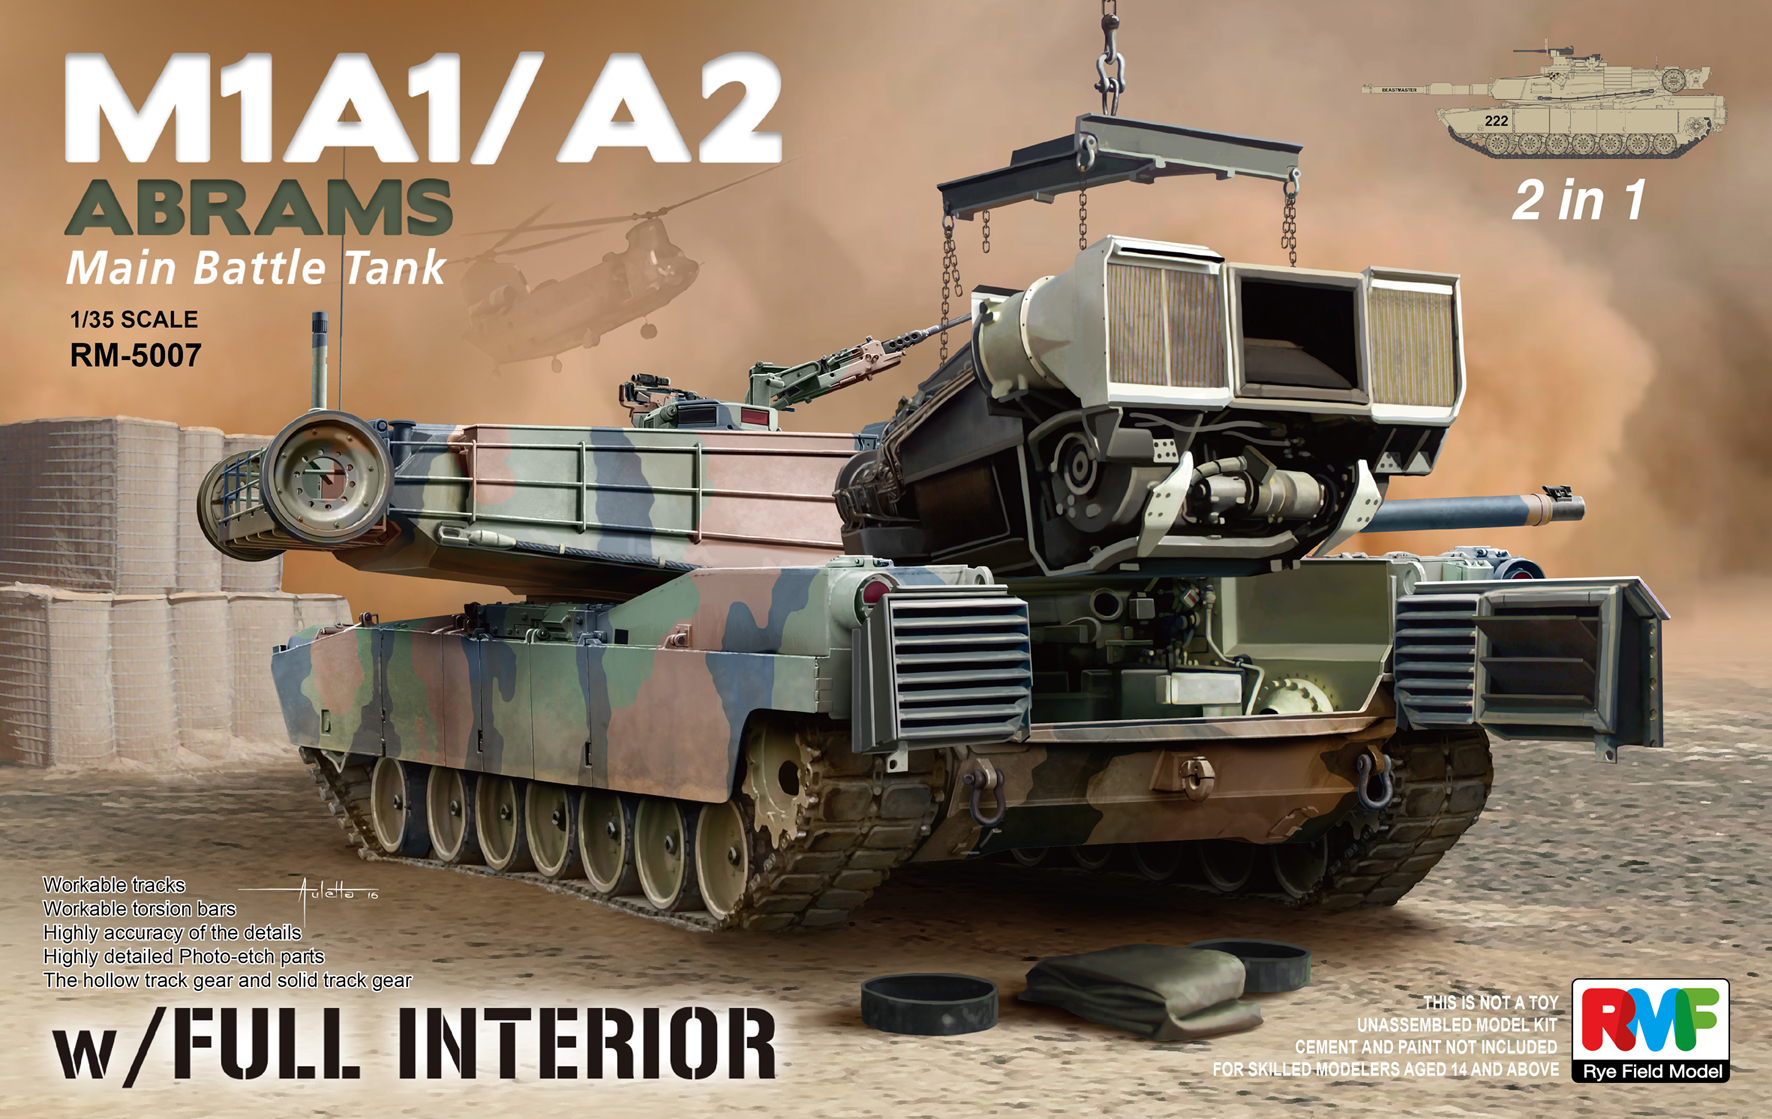 M1A1 / A2 Abrams w/Full Interior (2 in 1)